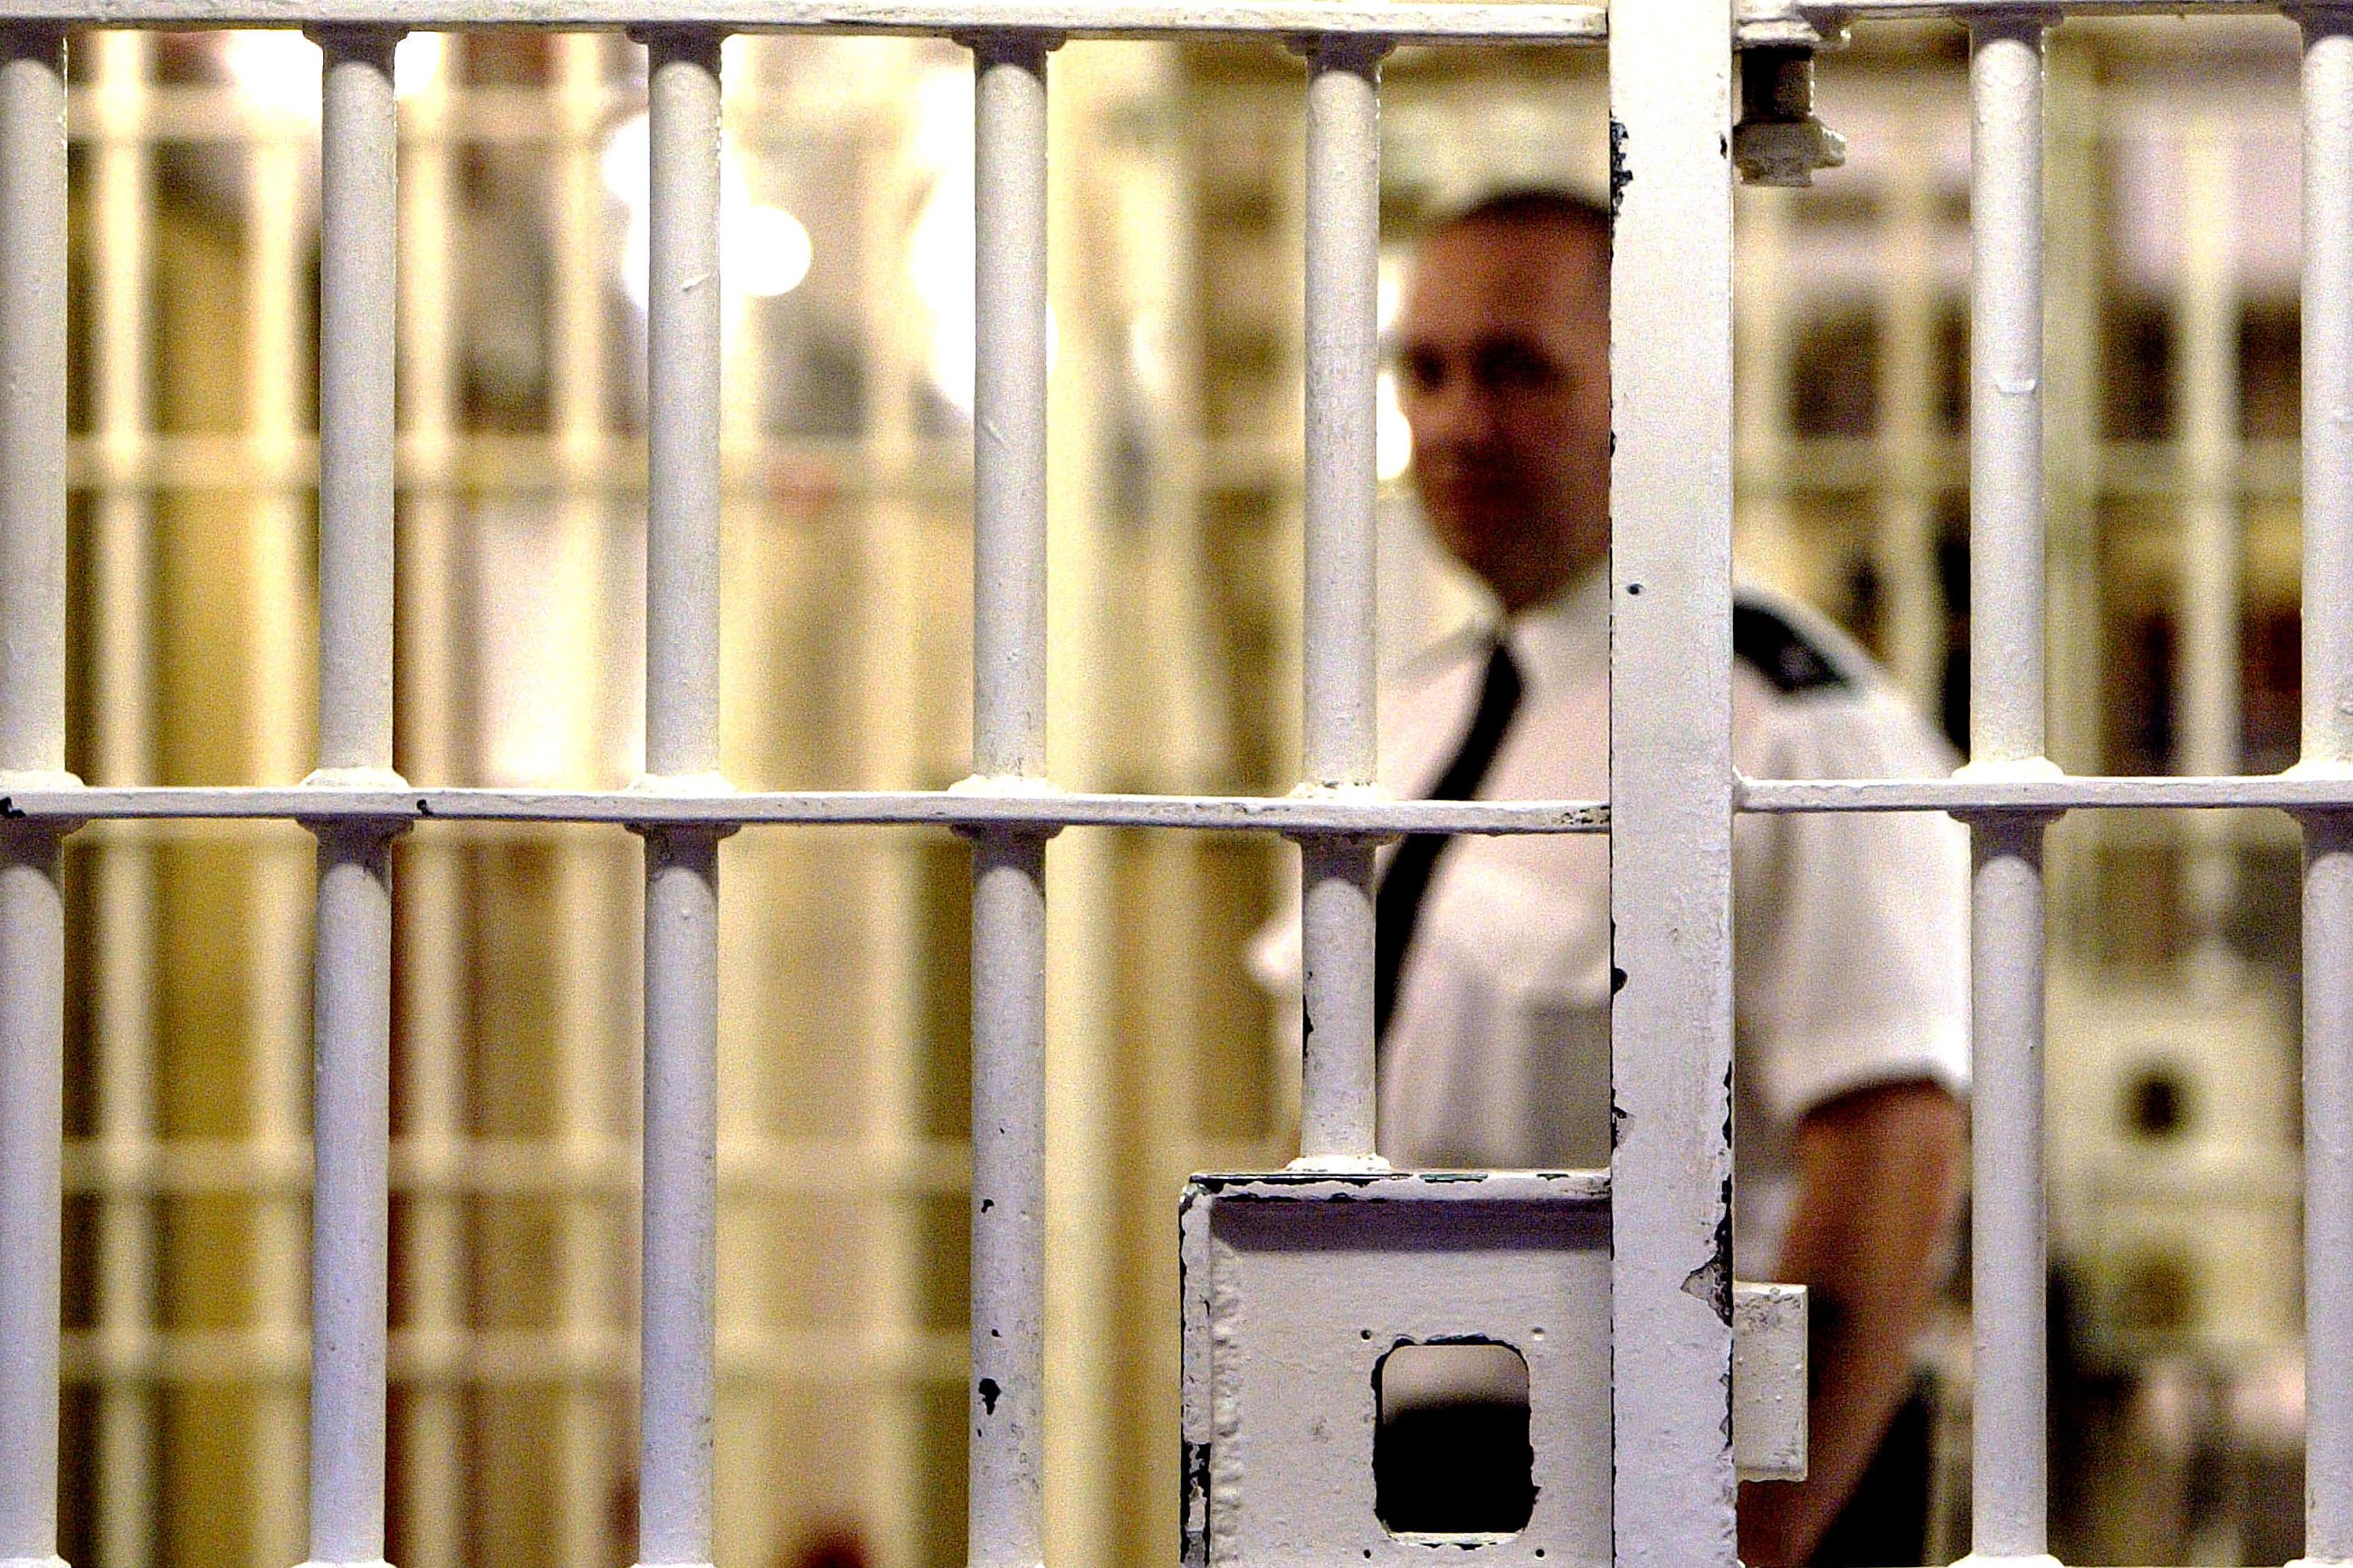 We need body scanners to tackle the prison drug problem